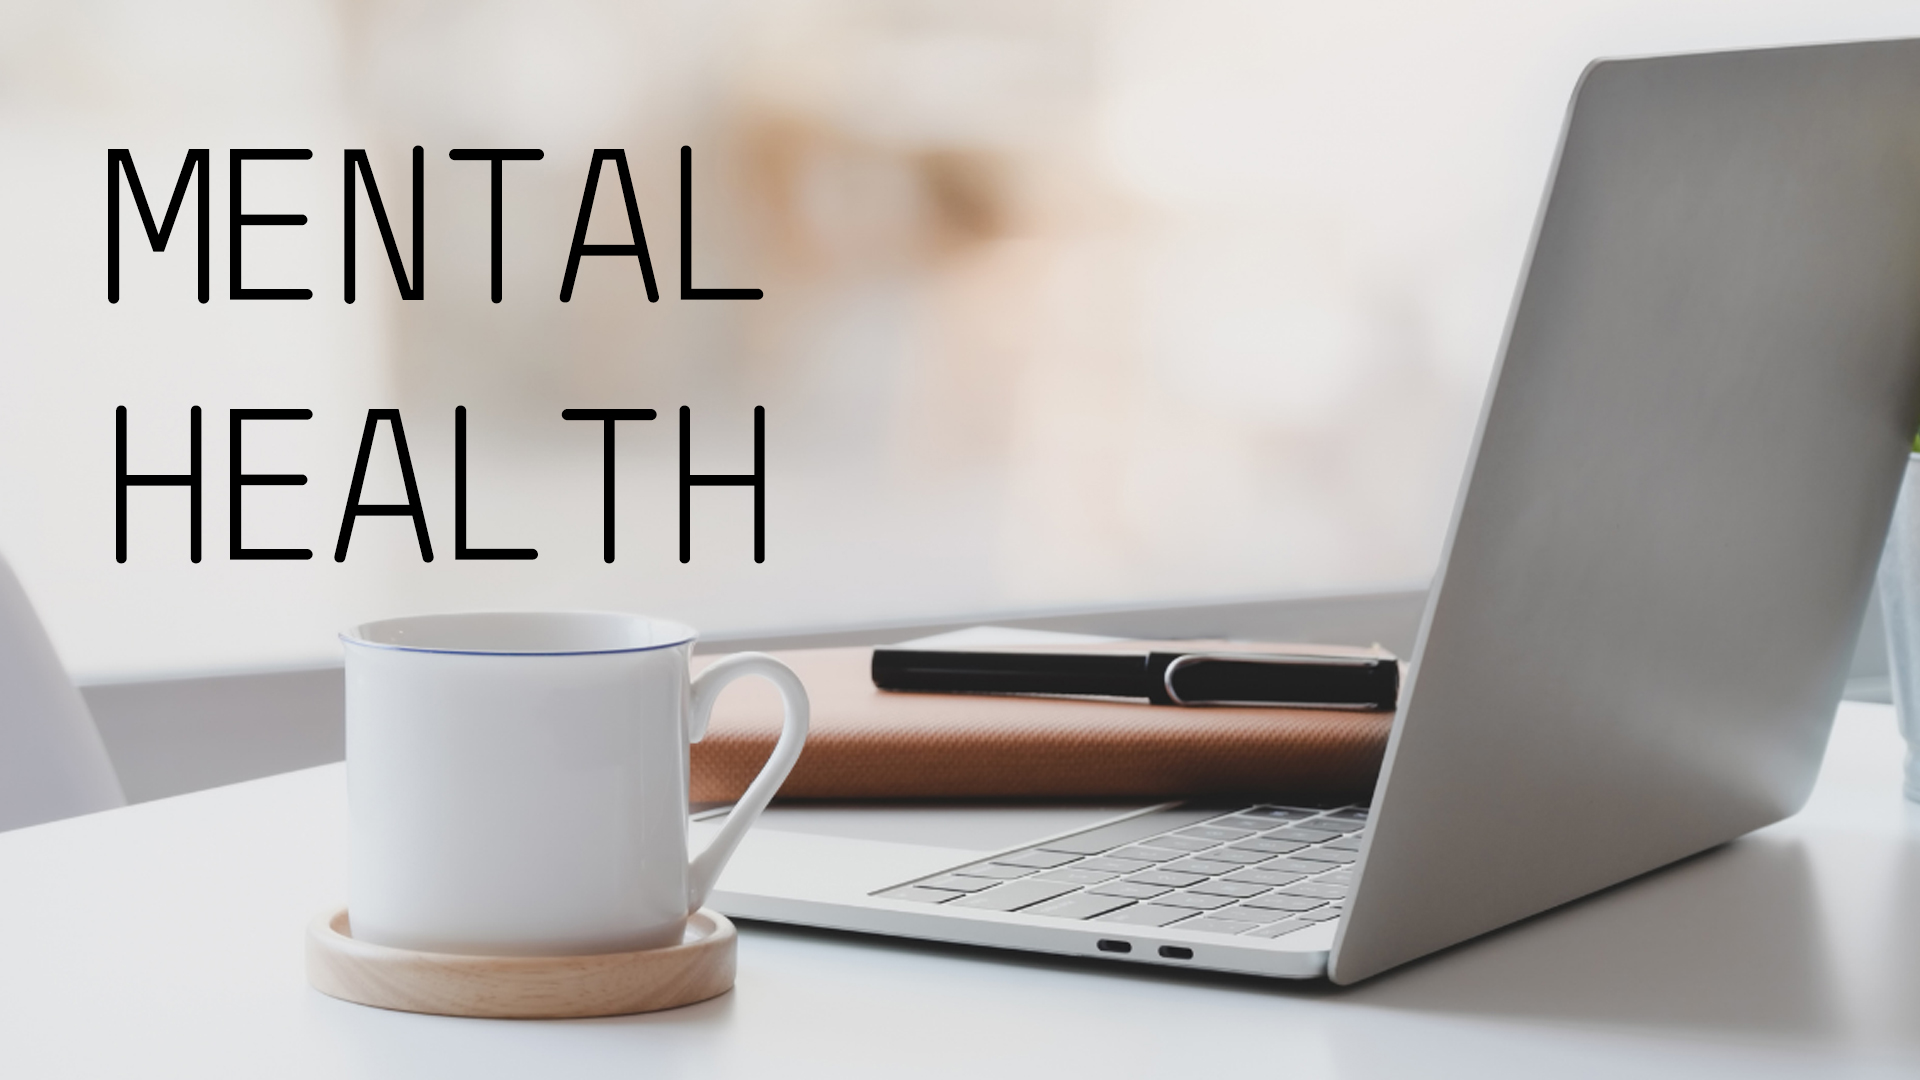 Taking care of mental health while working from home